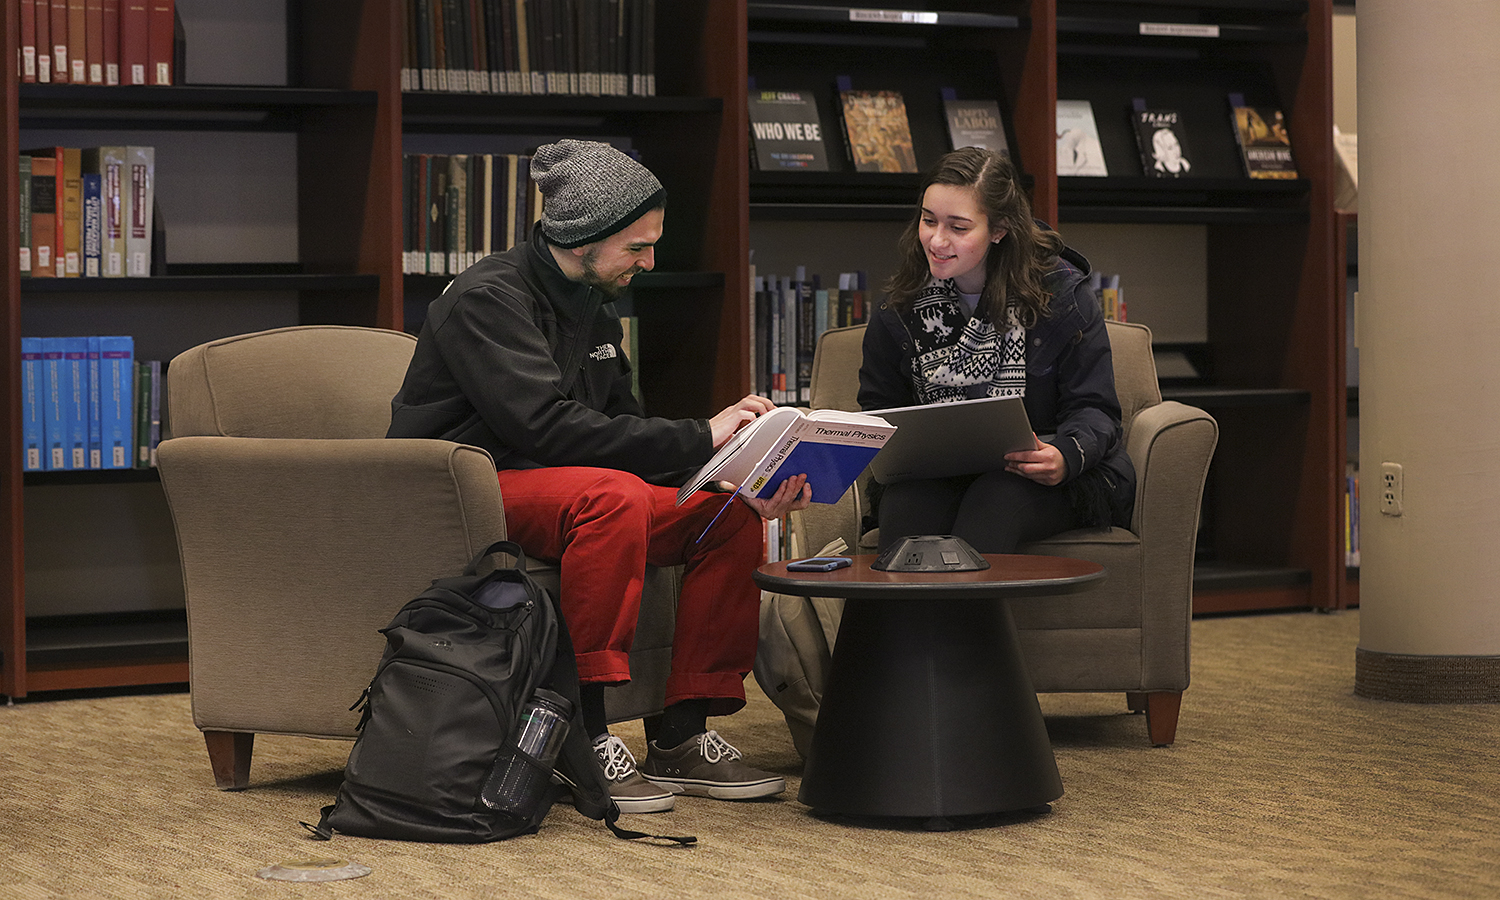 Students study in Library on the first day back to classes after winter break. Andrew Scammell '18 and Danielle Moyer '18